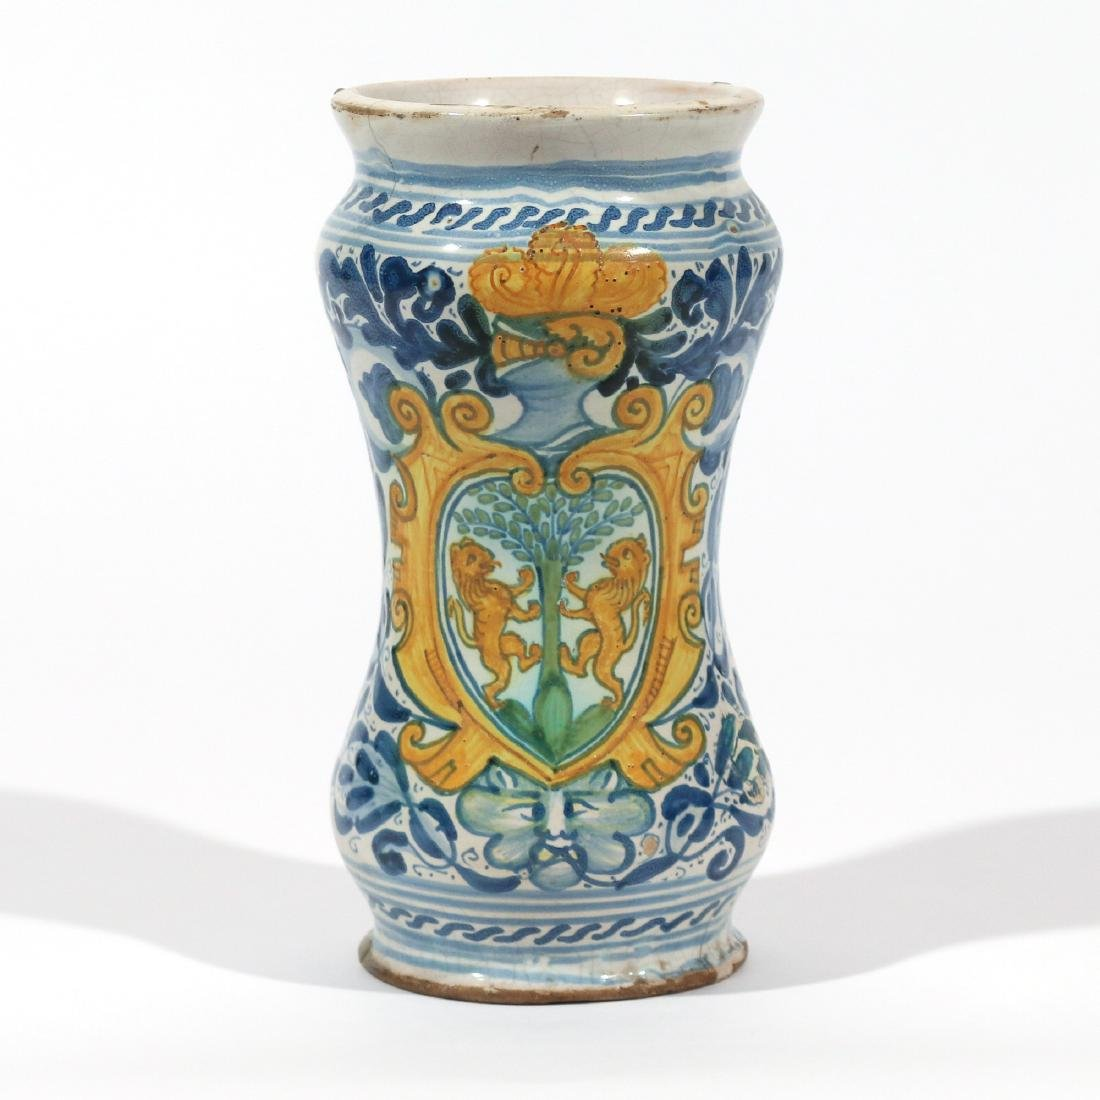 EARLY ITALIAN MAIOLICA APOTHECARY JAR